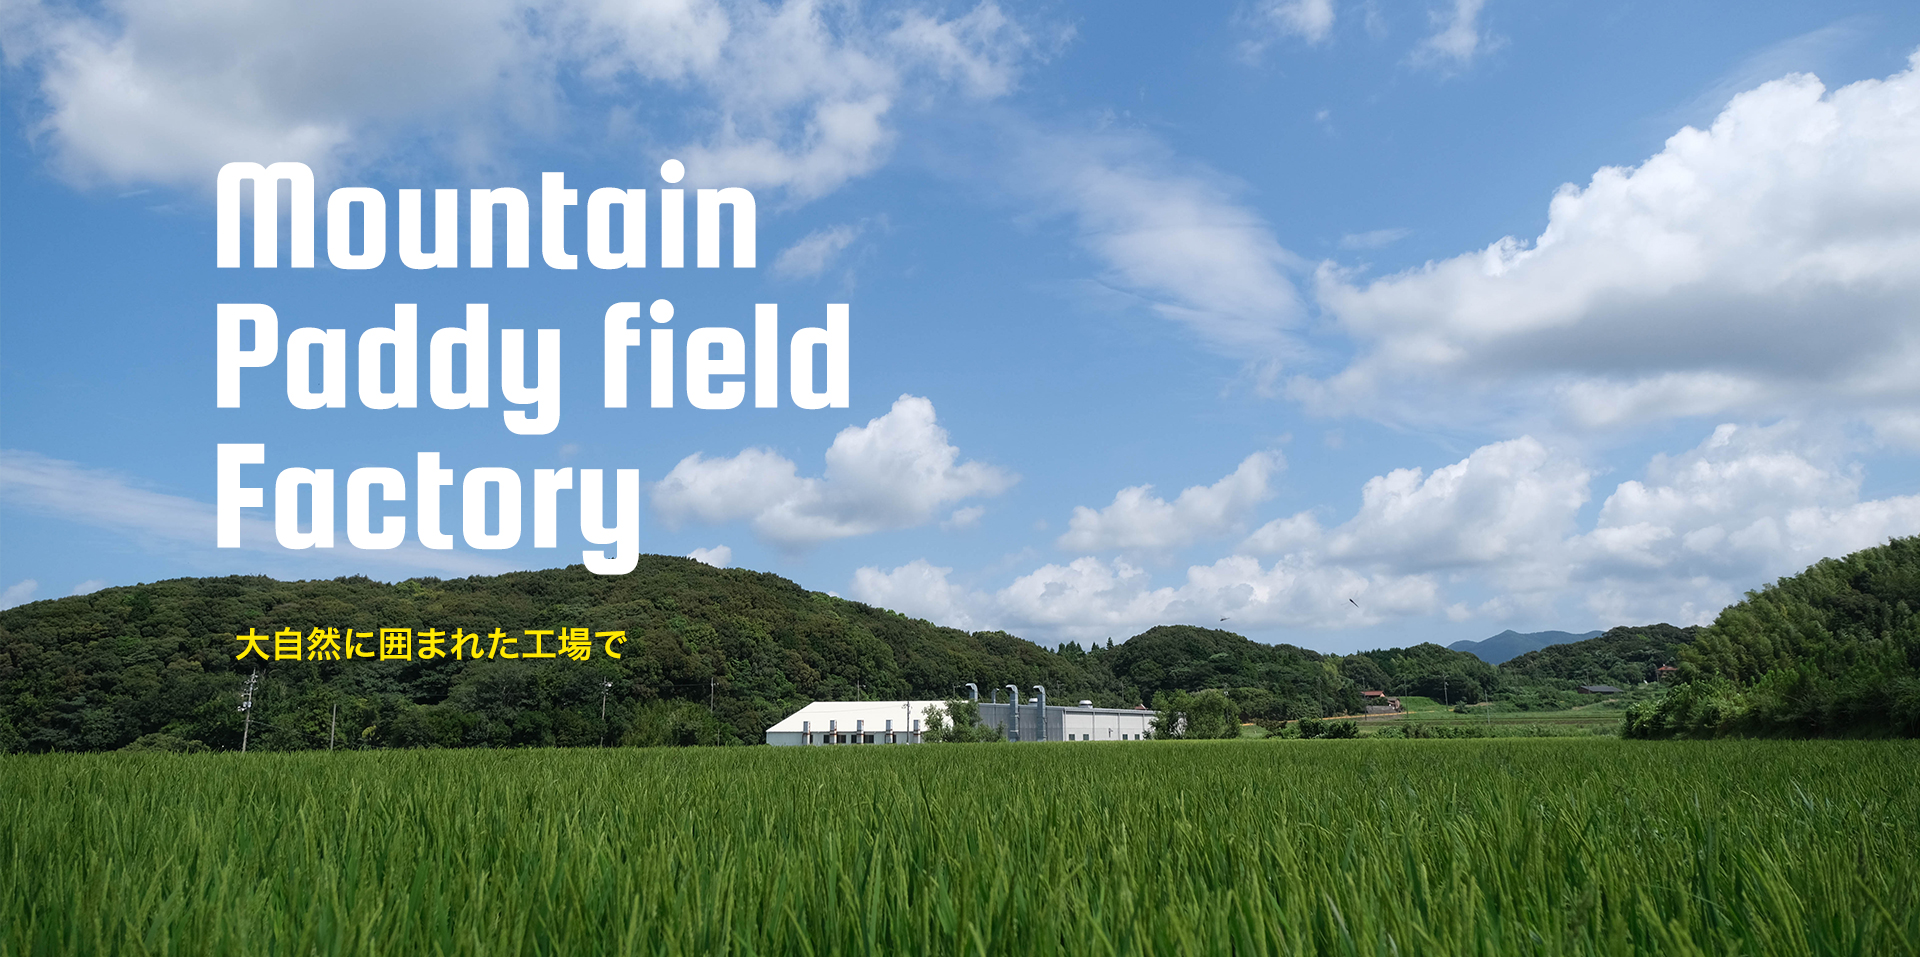 Mountain Paddy field Factory 大自然に囲まれた工場で